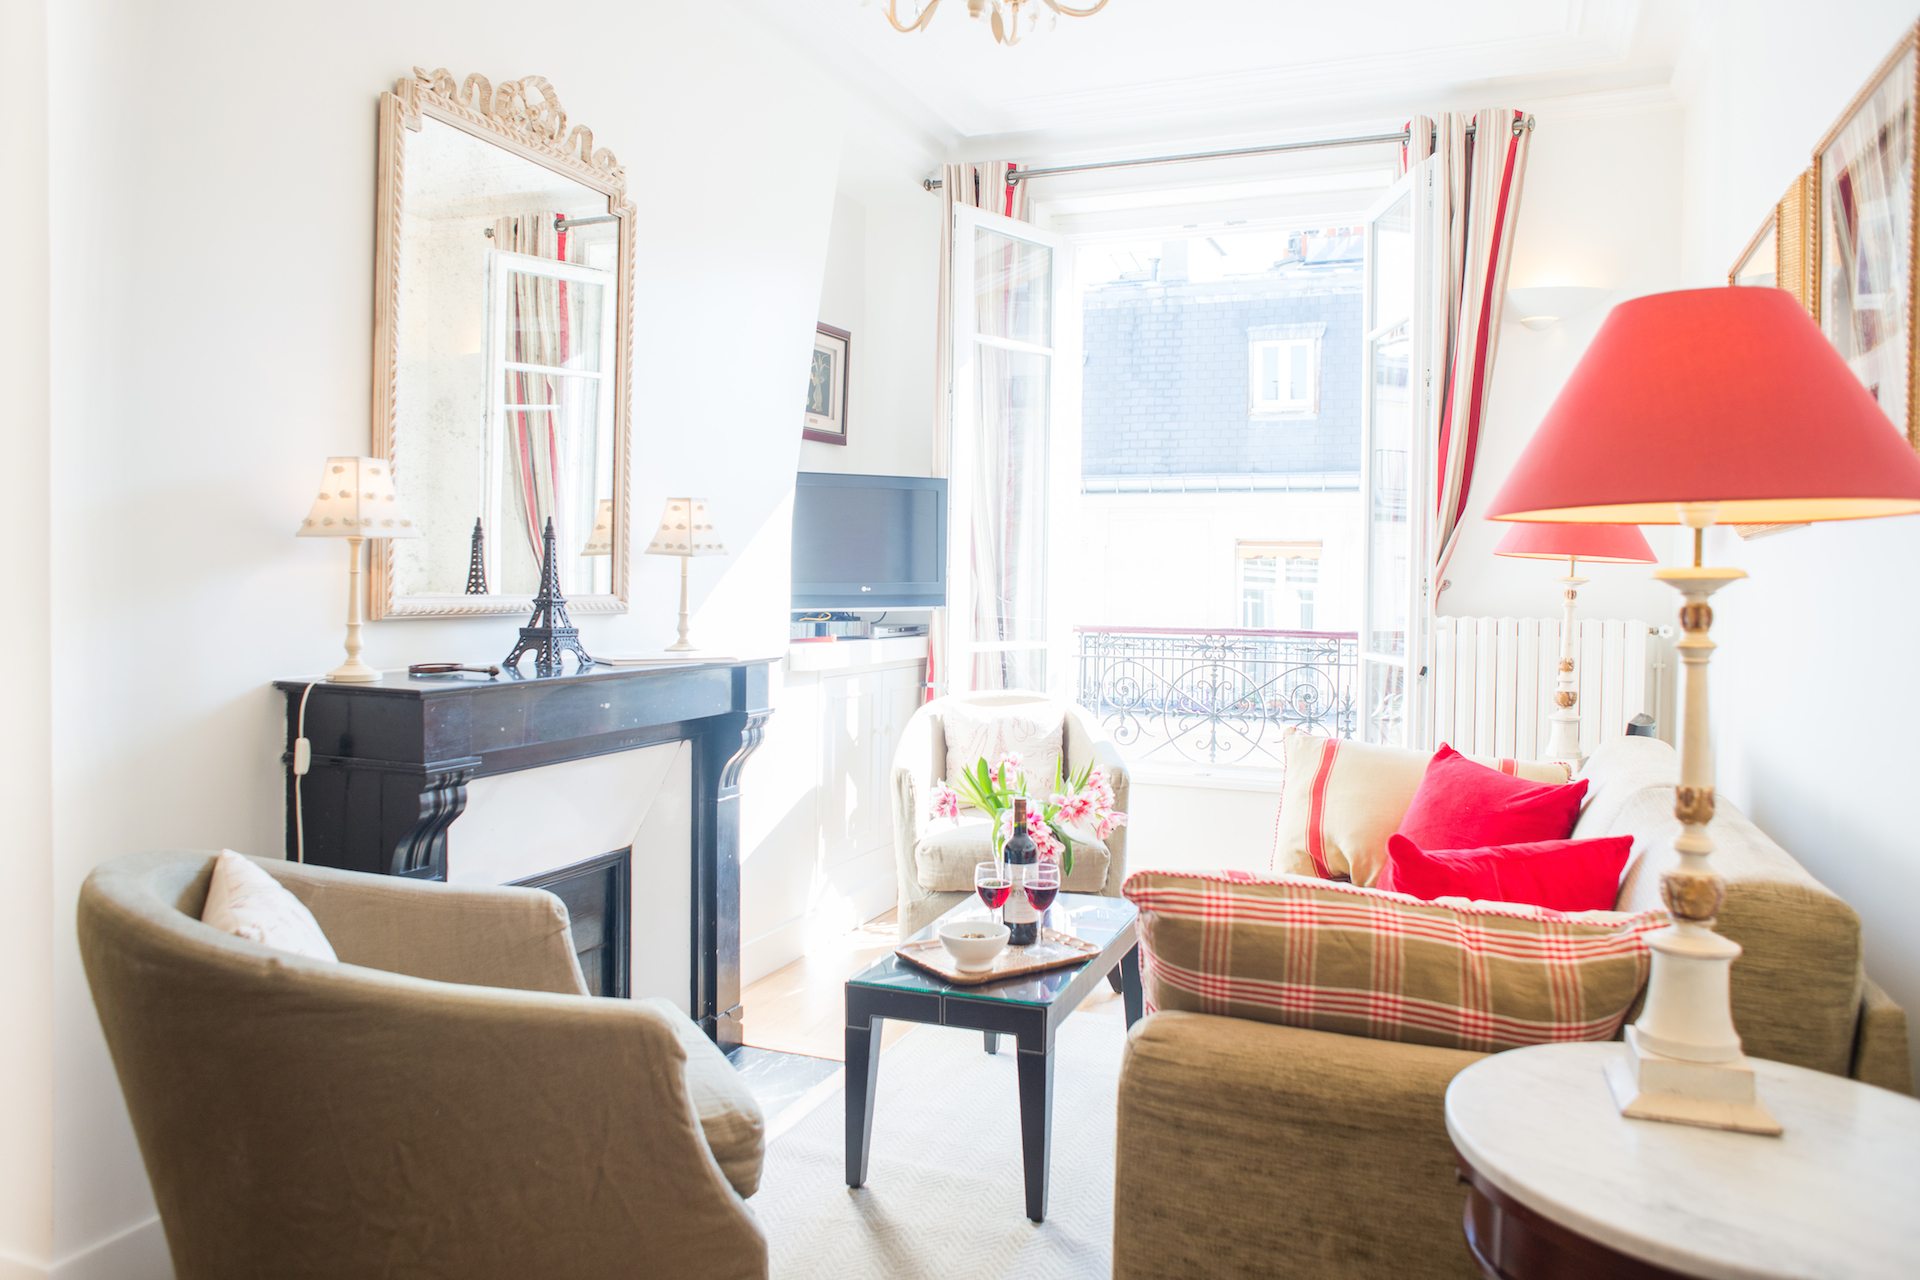 Large French windows provide sunlight in the Vougeot vacation rental offered by Paris Perfect